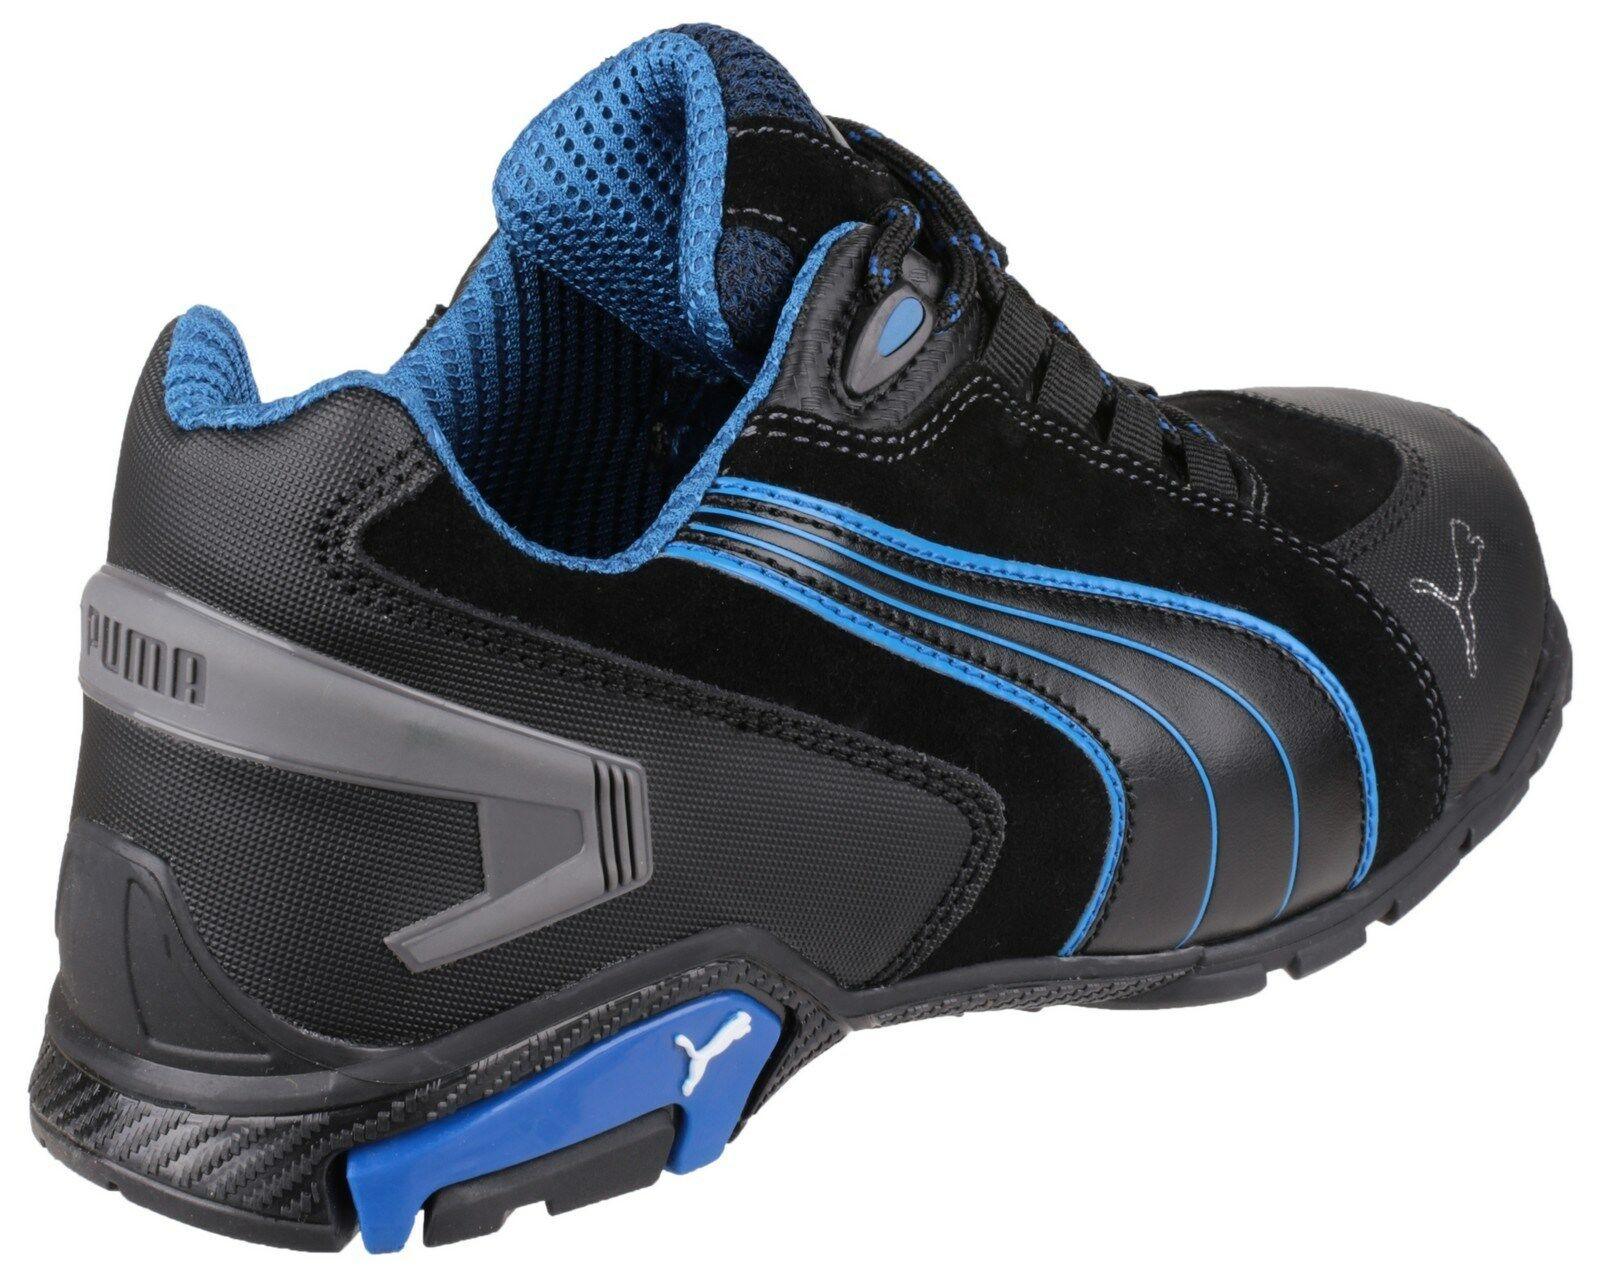 Puma Rio noir/Bleu faible Safety homme Industrial UK6-13 Work Bottes Trainers chaussures UK6-13 Industrial aa62b0